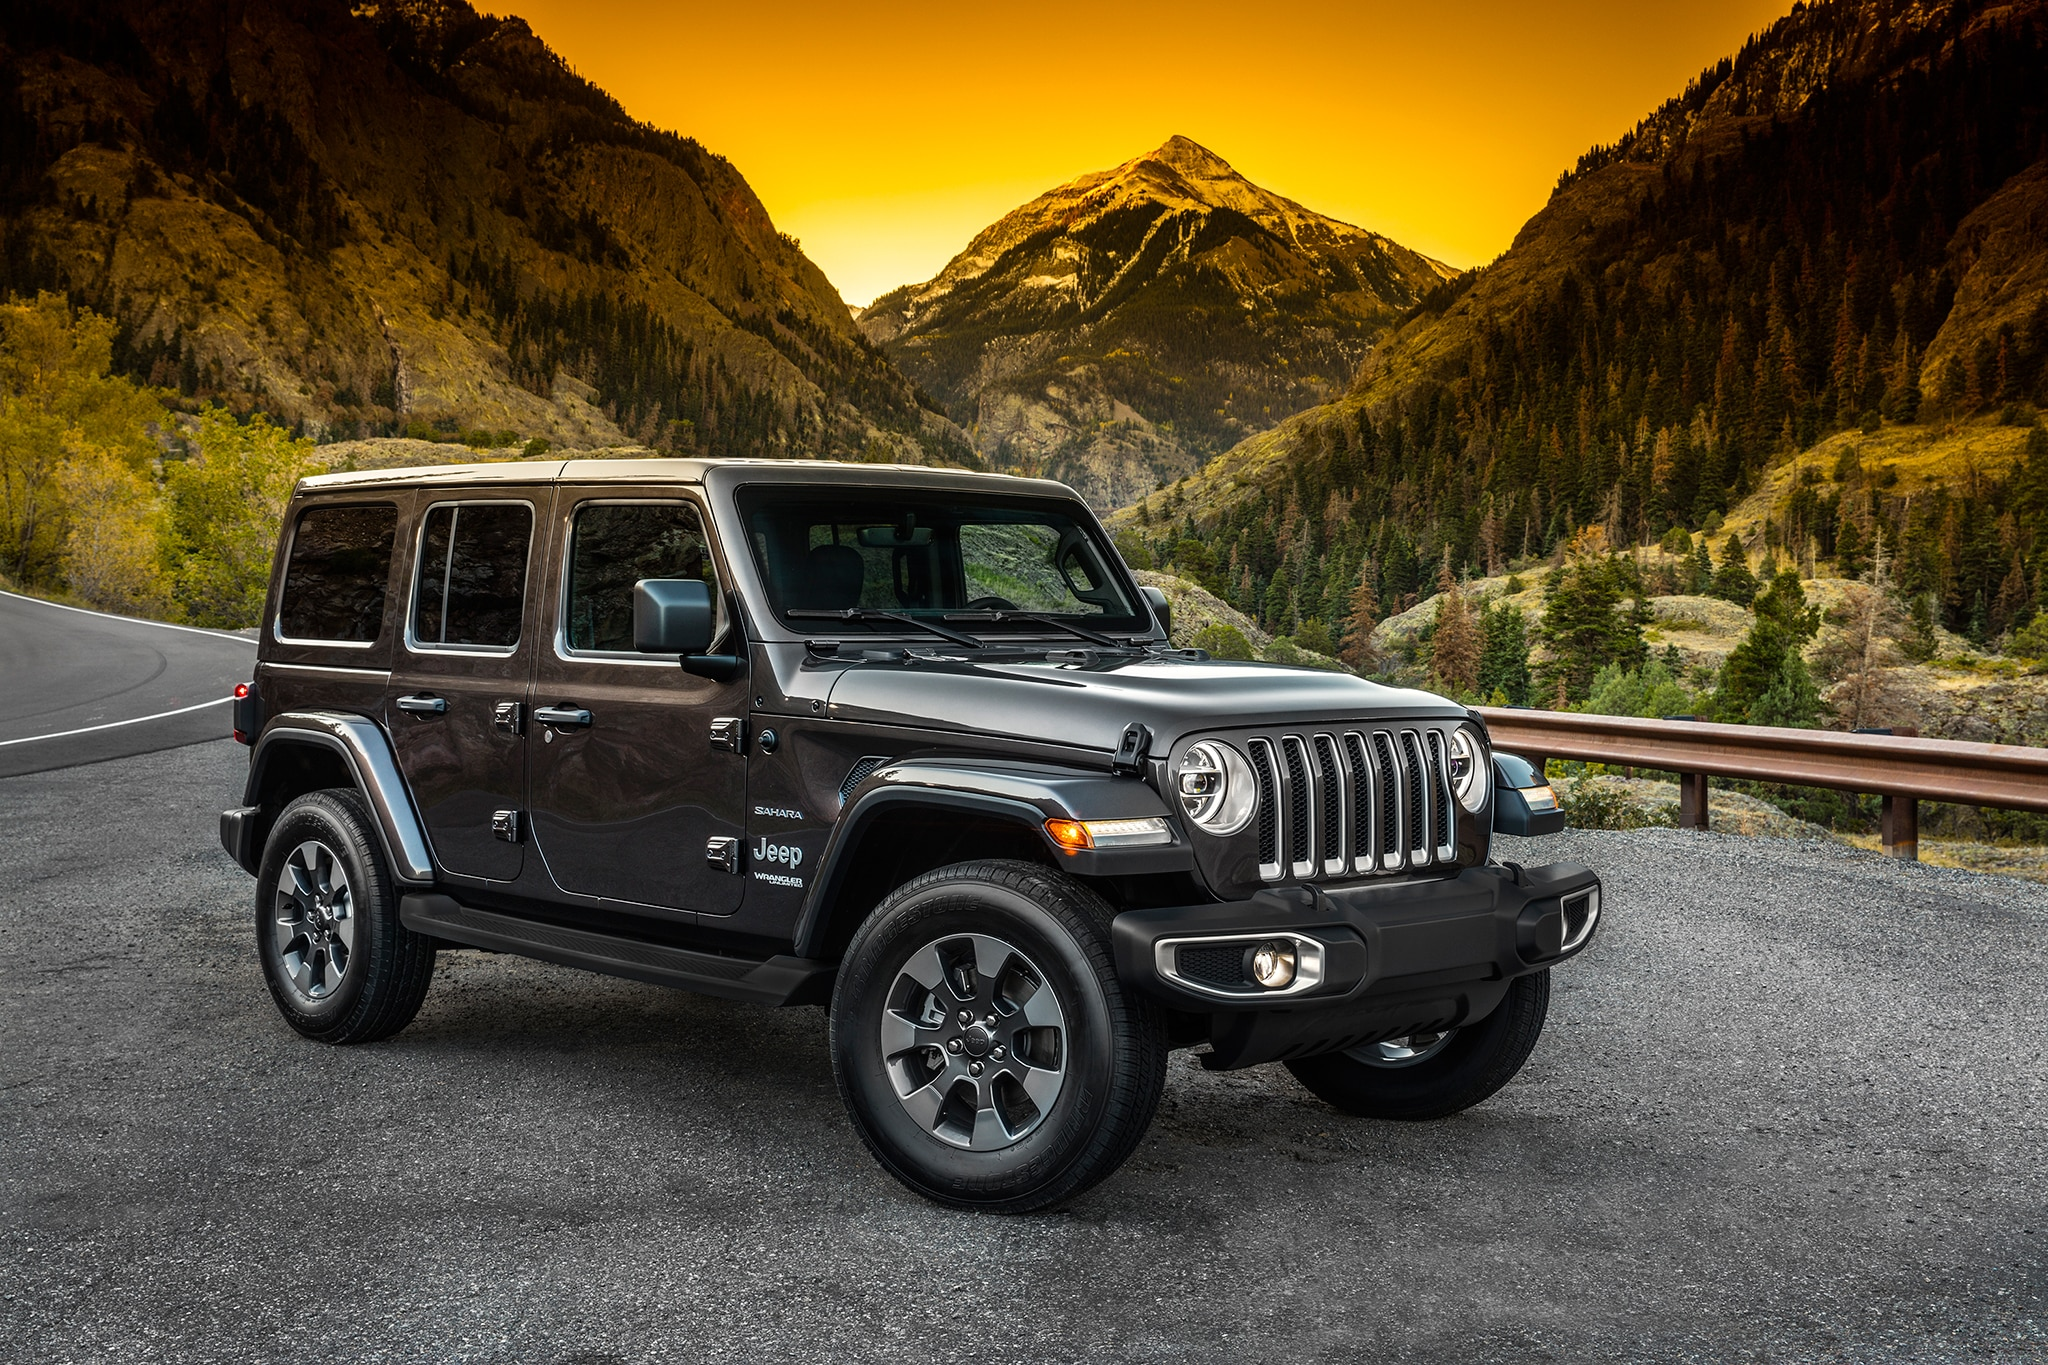 Jeep Wrangler Unlimited For Sale >> 2018 Jeep Wranger Unlimited Sahara | Automobile Magazine